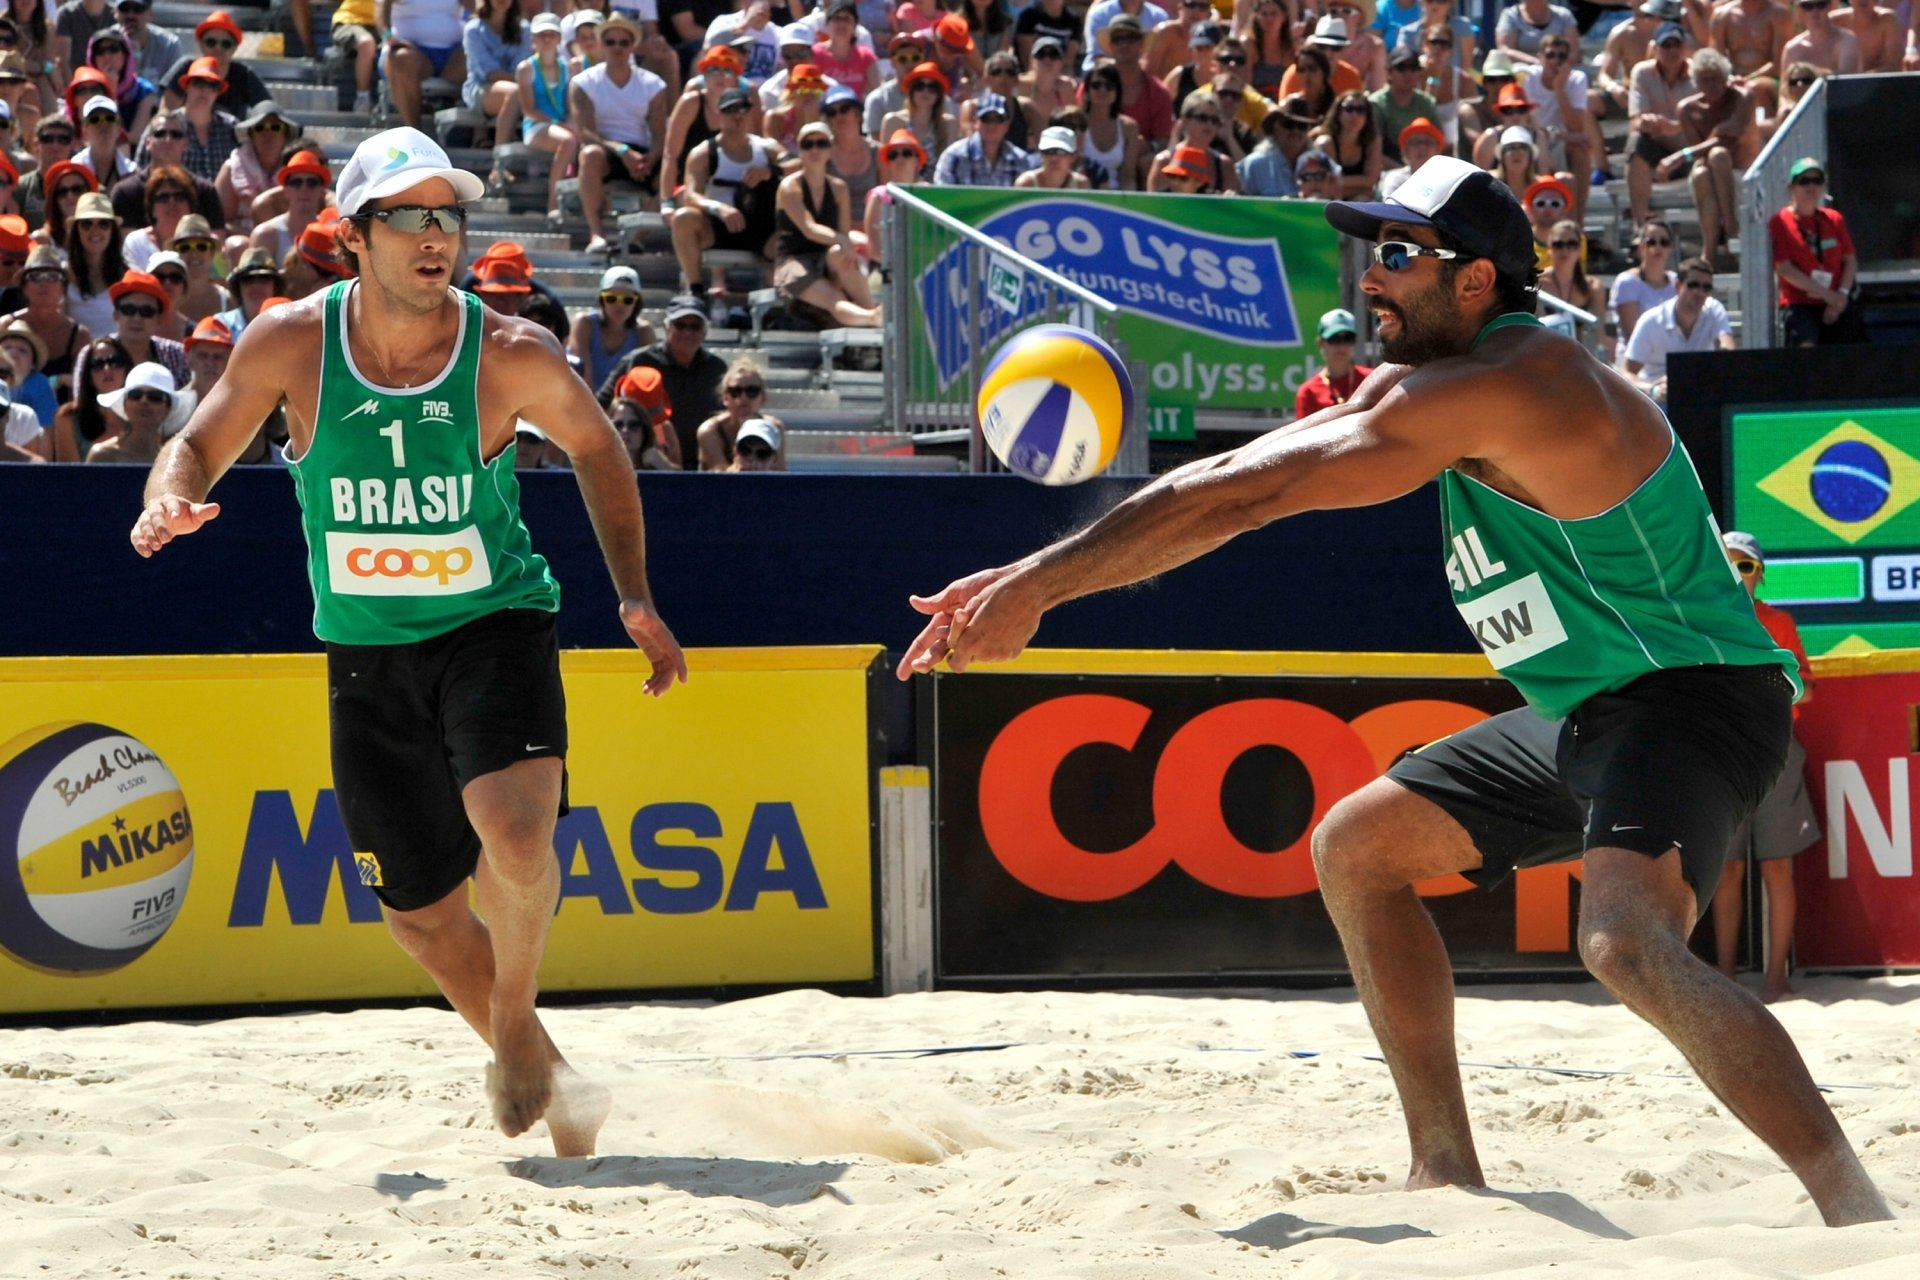 Pedro and Bruno played together in Gstaad in 2013 and won the silver medal in the Swiss Alps (Photocredit: FIVB)